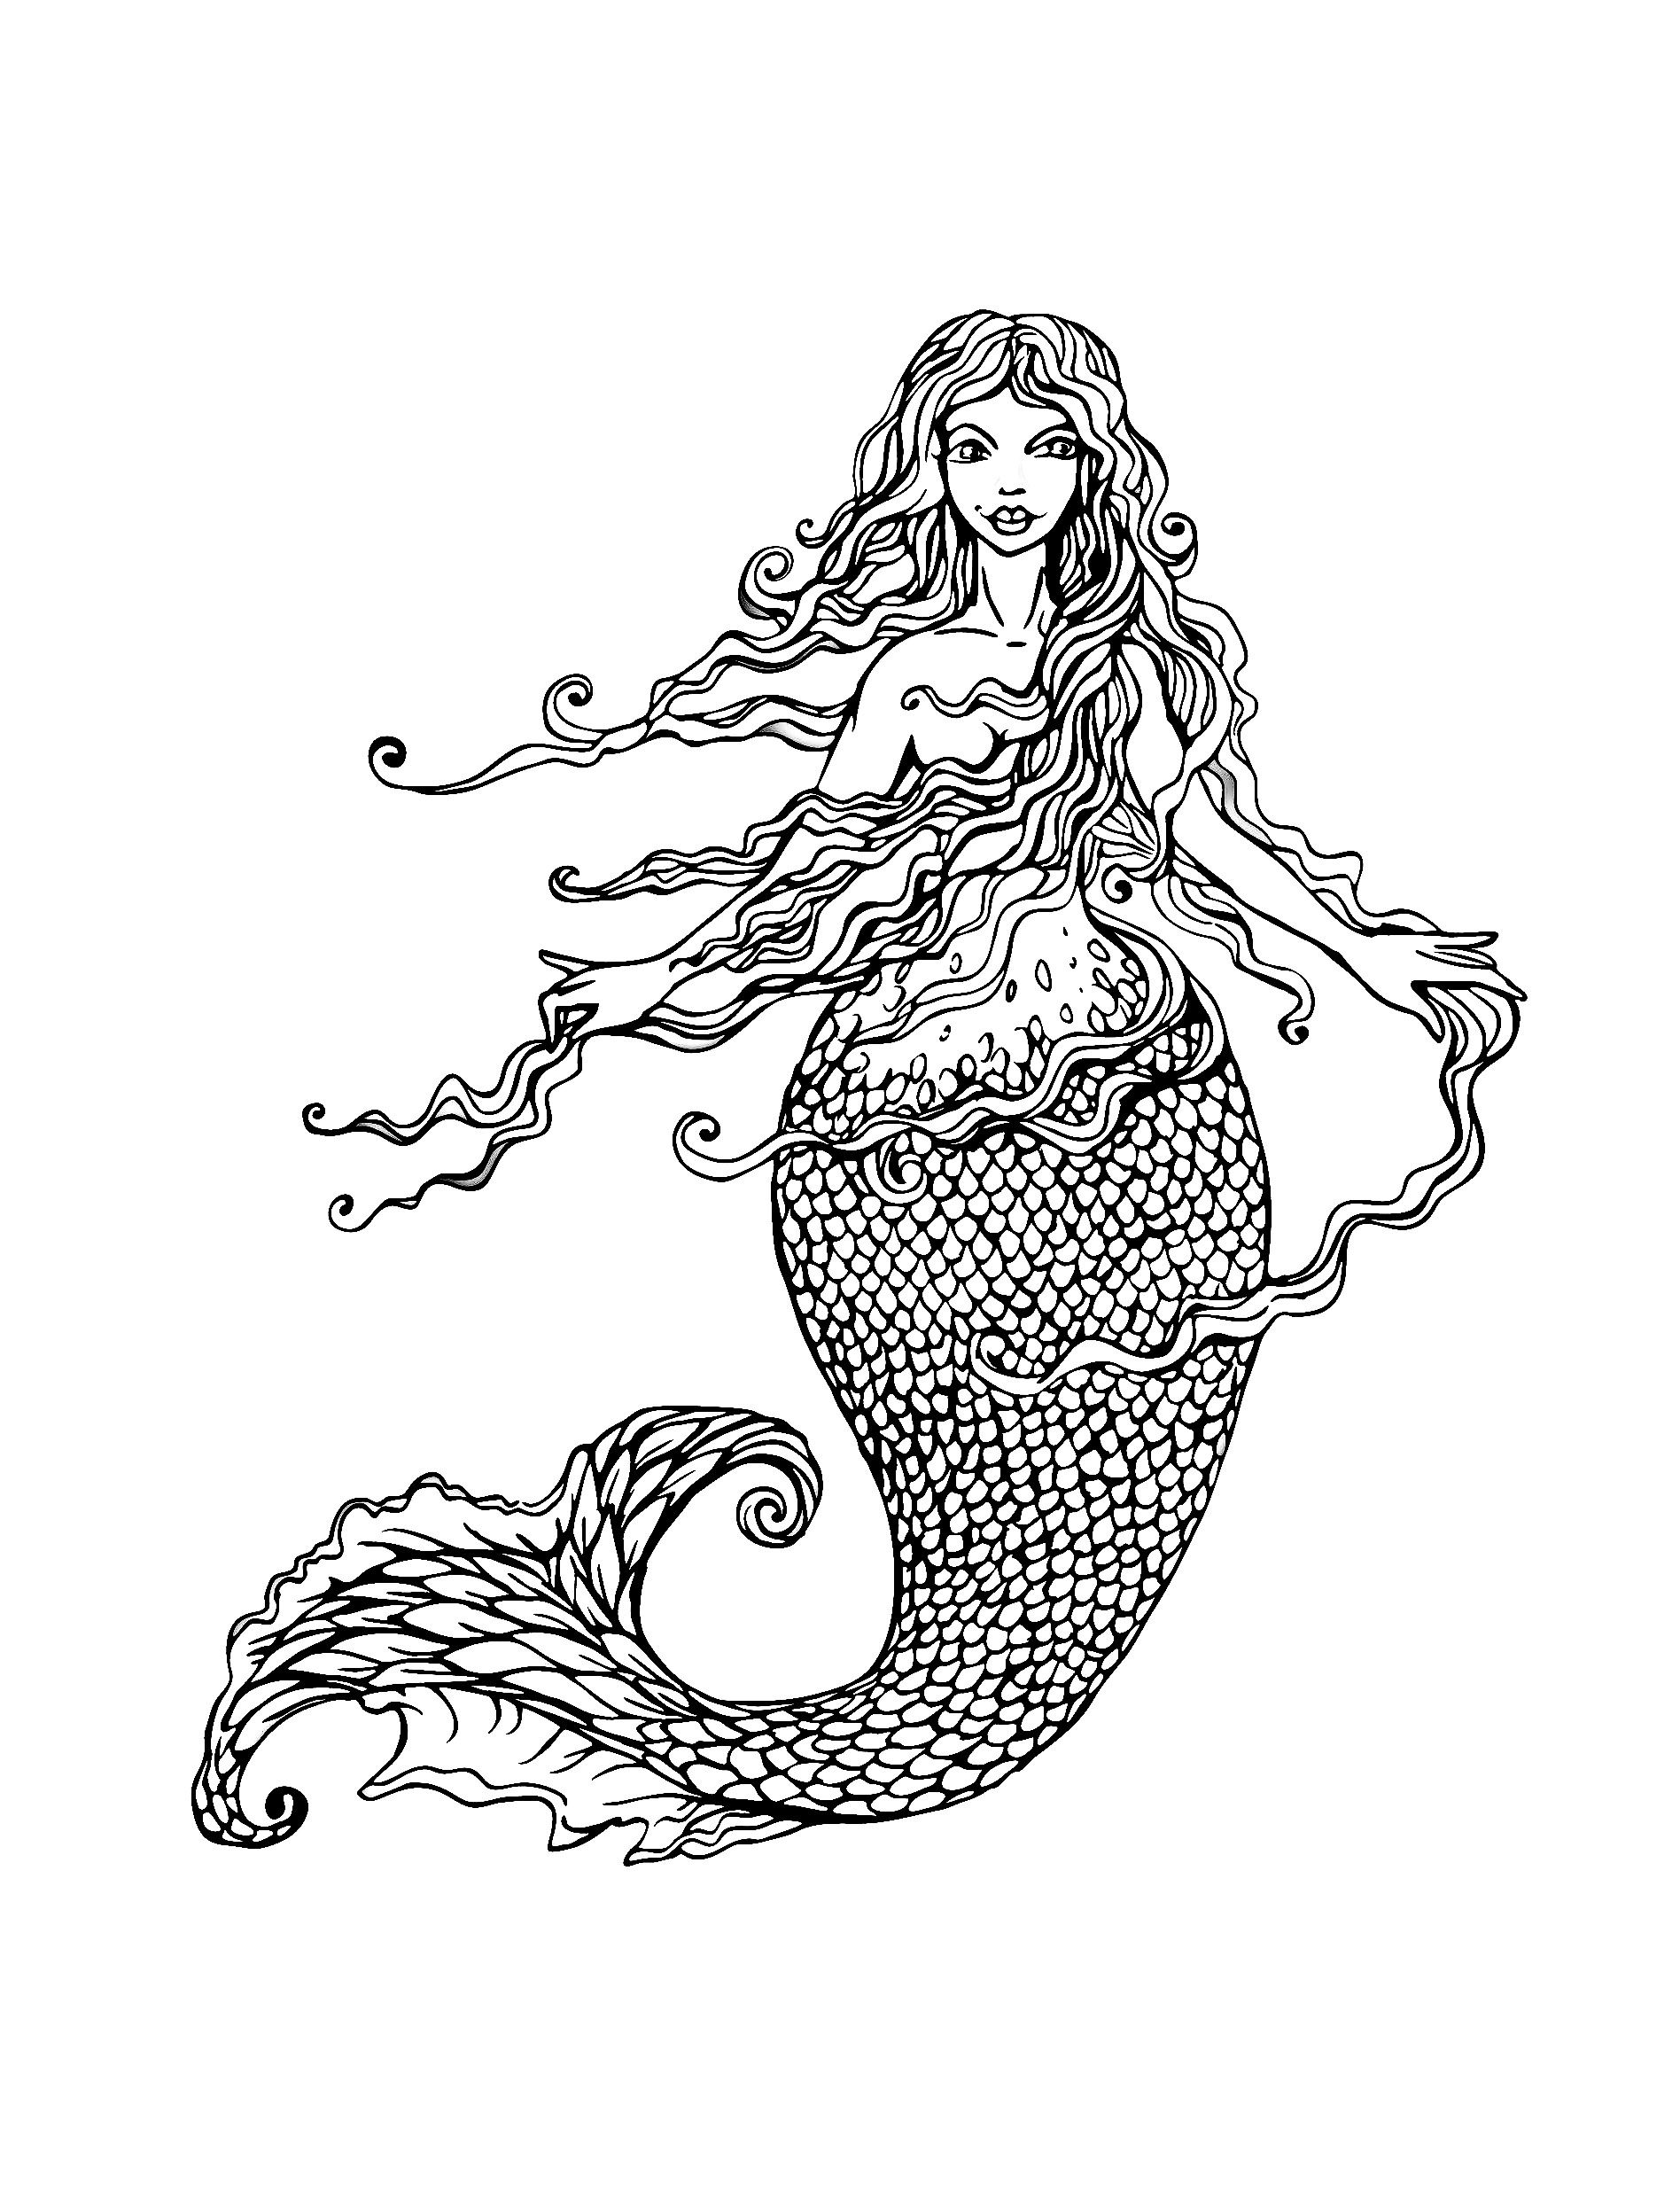 Free coloring pages online adults - Adult Mermaid With Long Hair By Coloring Pages Printable And Coloring Book To Print For Free Find More Coloring Pages Online For Kids And Adults Of Adult